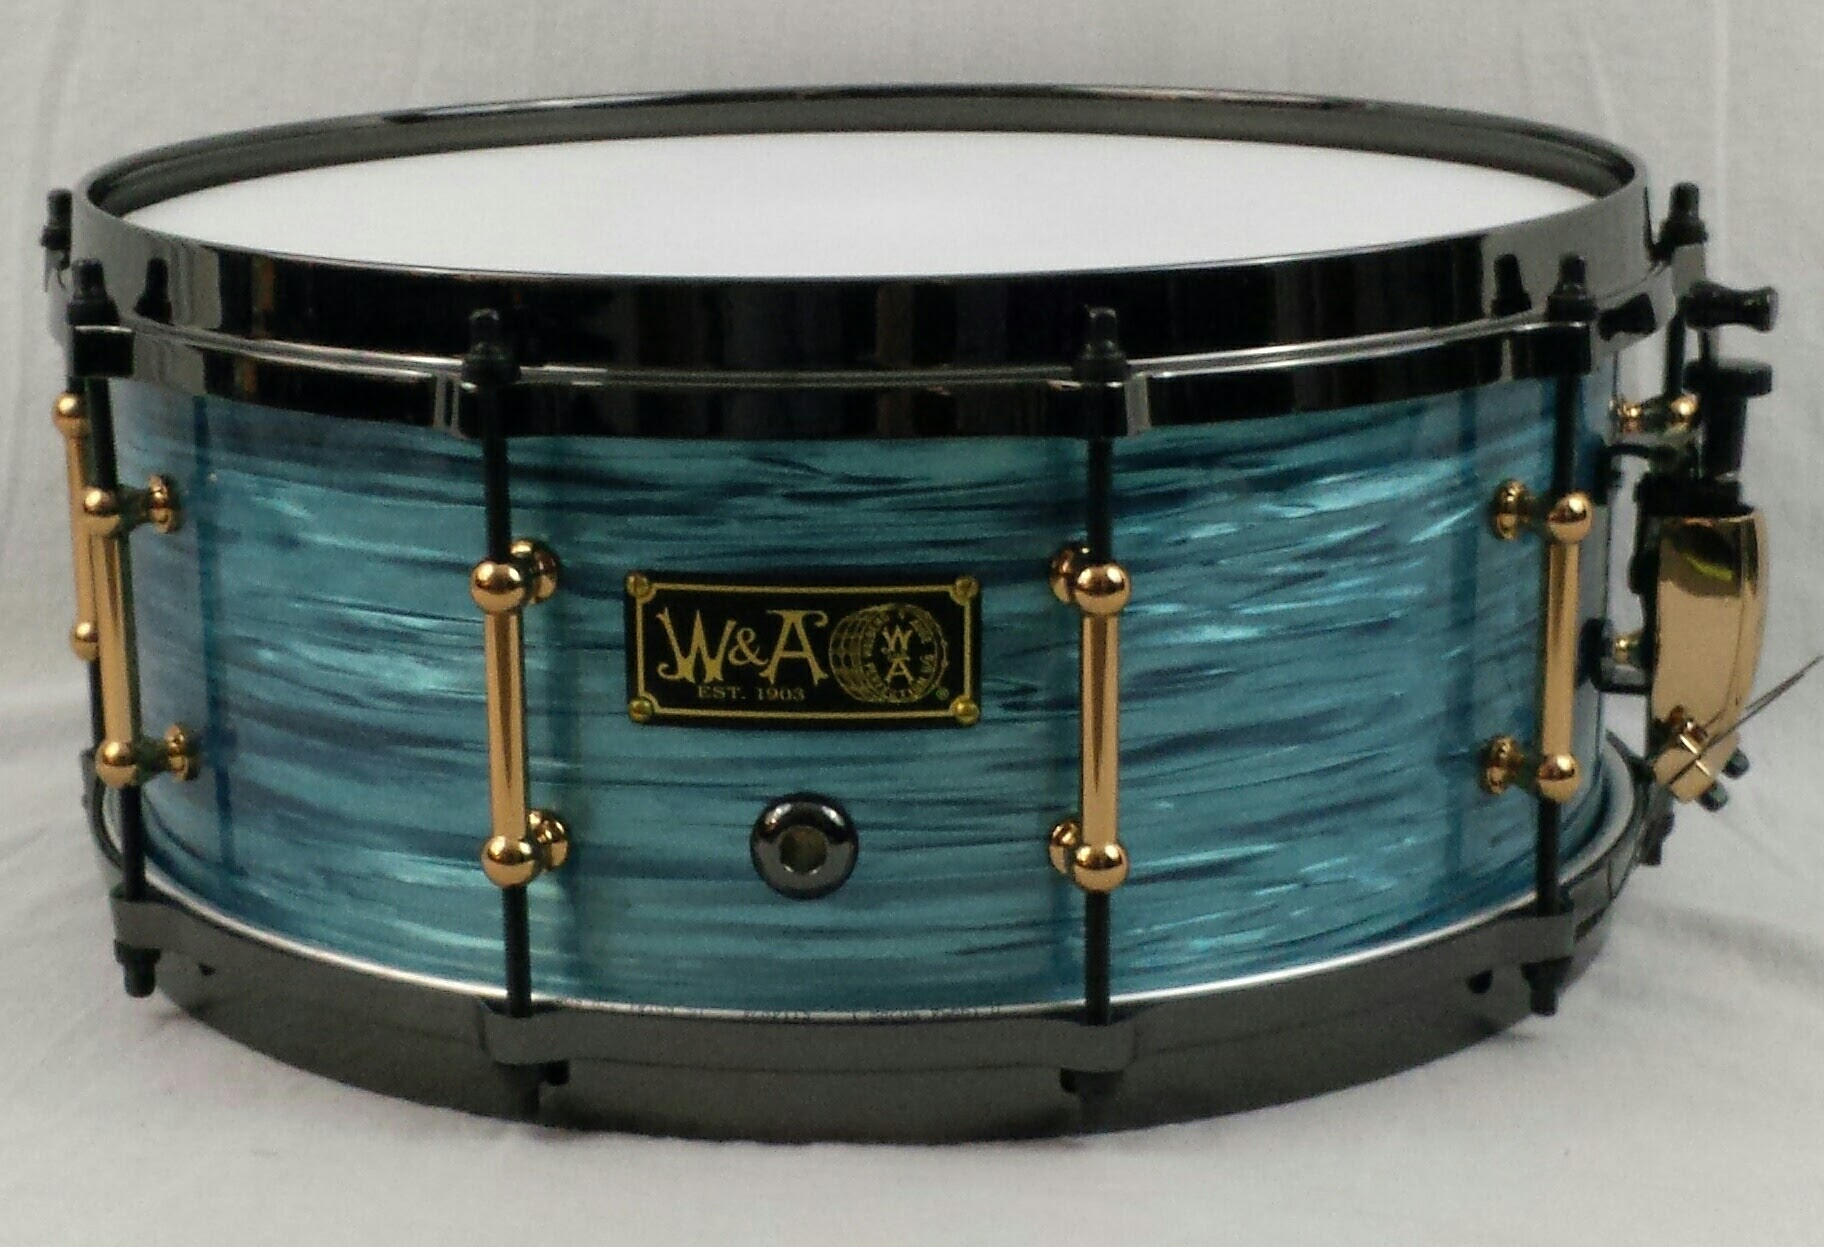 6x14 10ply Maple Shell wraped in turquoise rippleimage.jpg